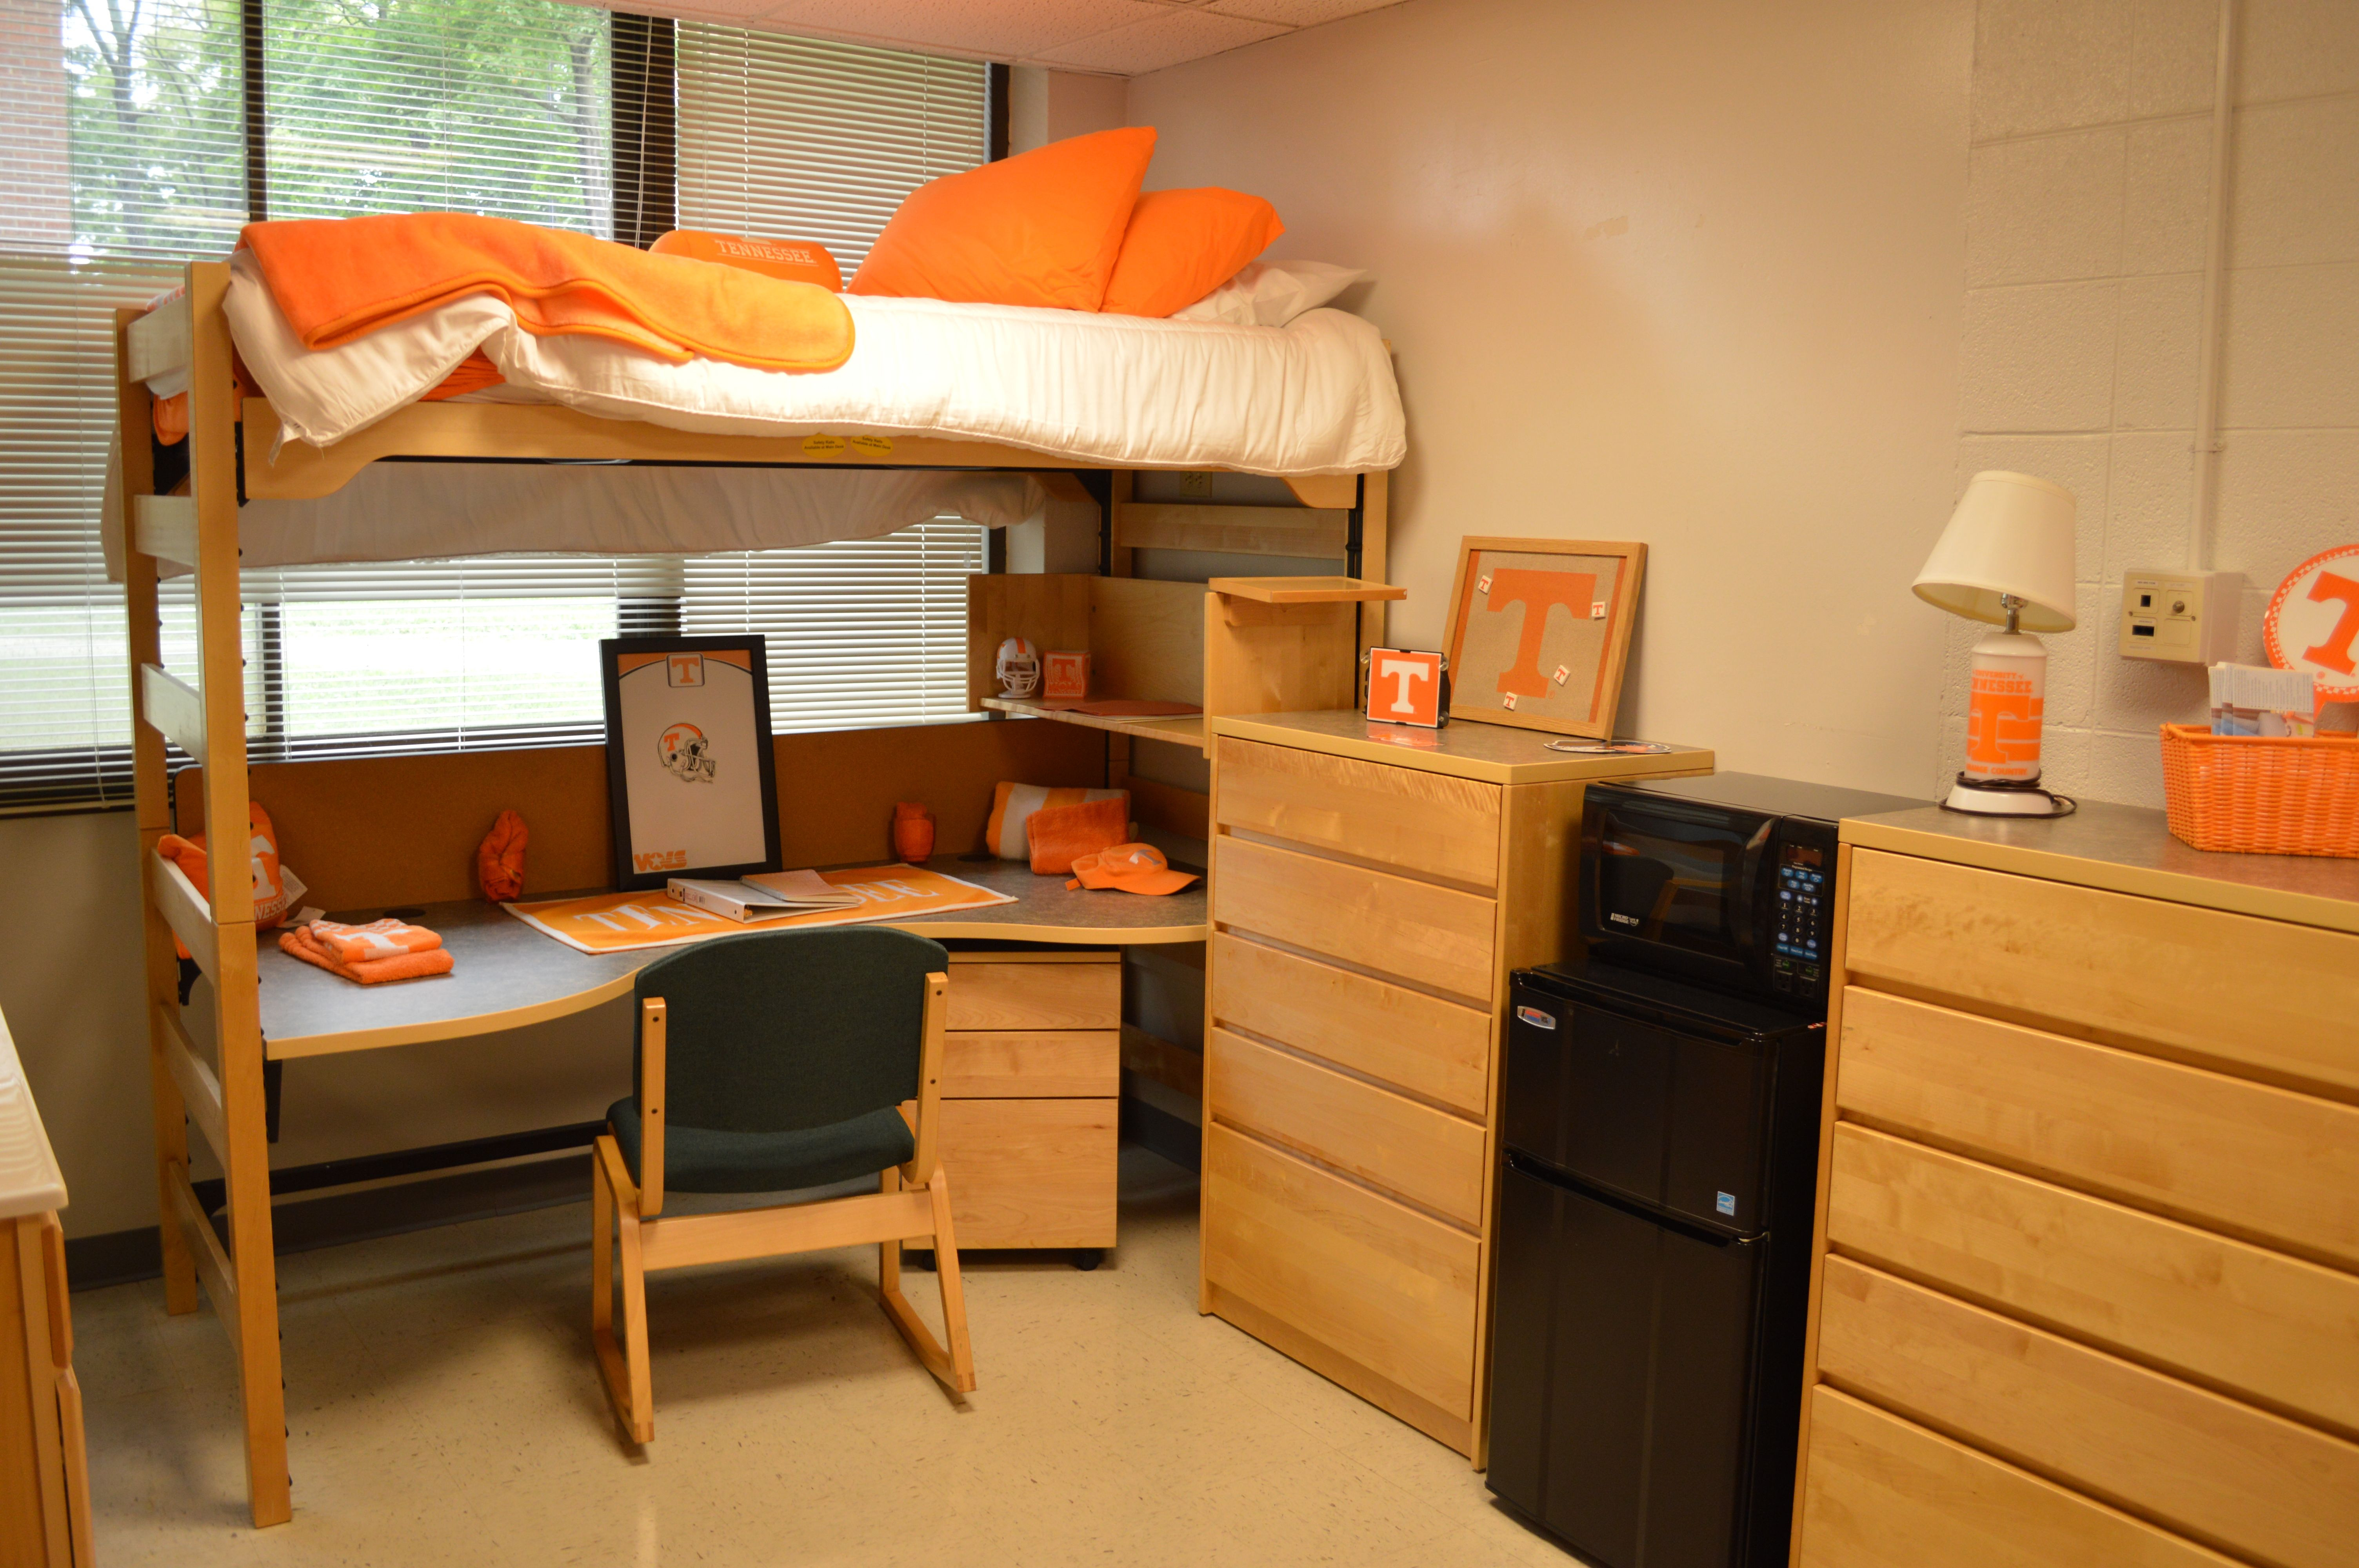 College bed risers - Morrill Hall Residence Hall Room